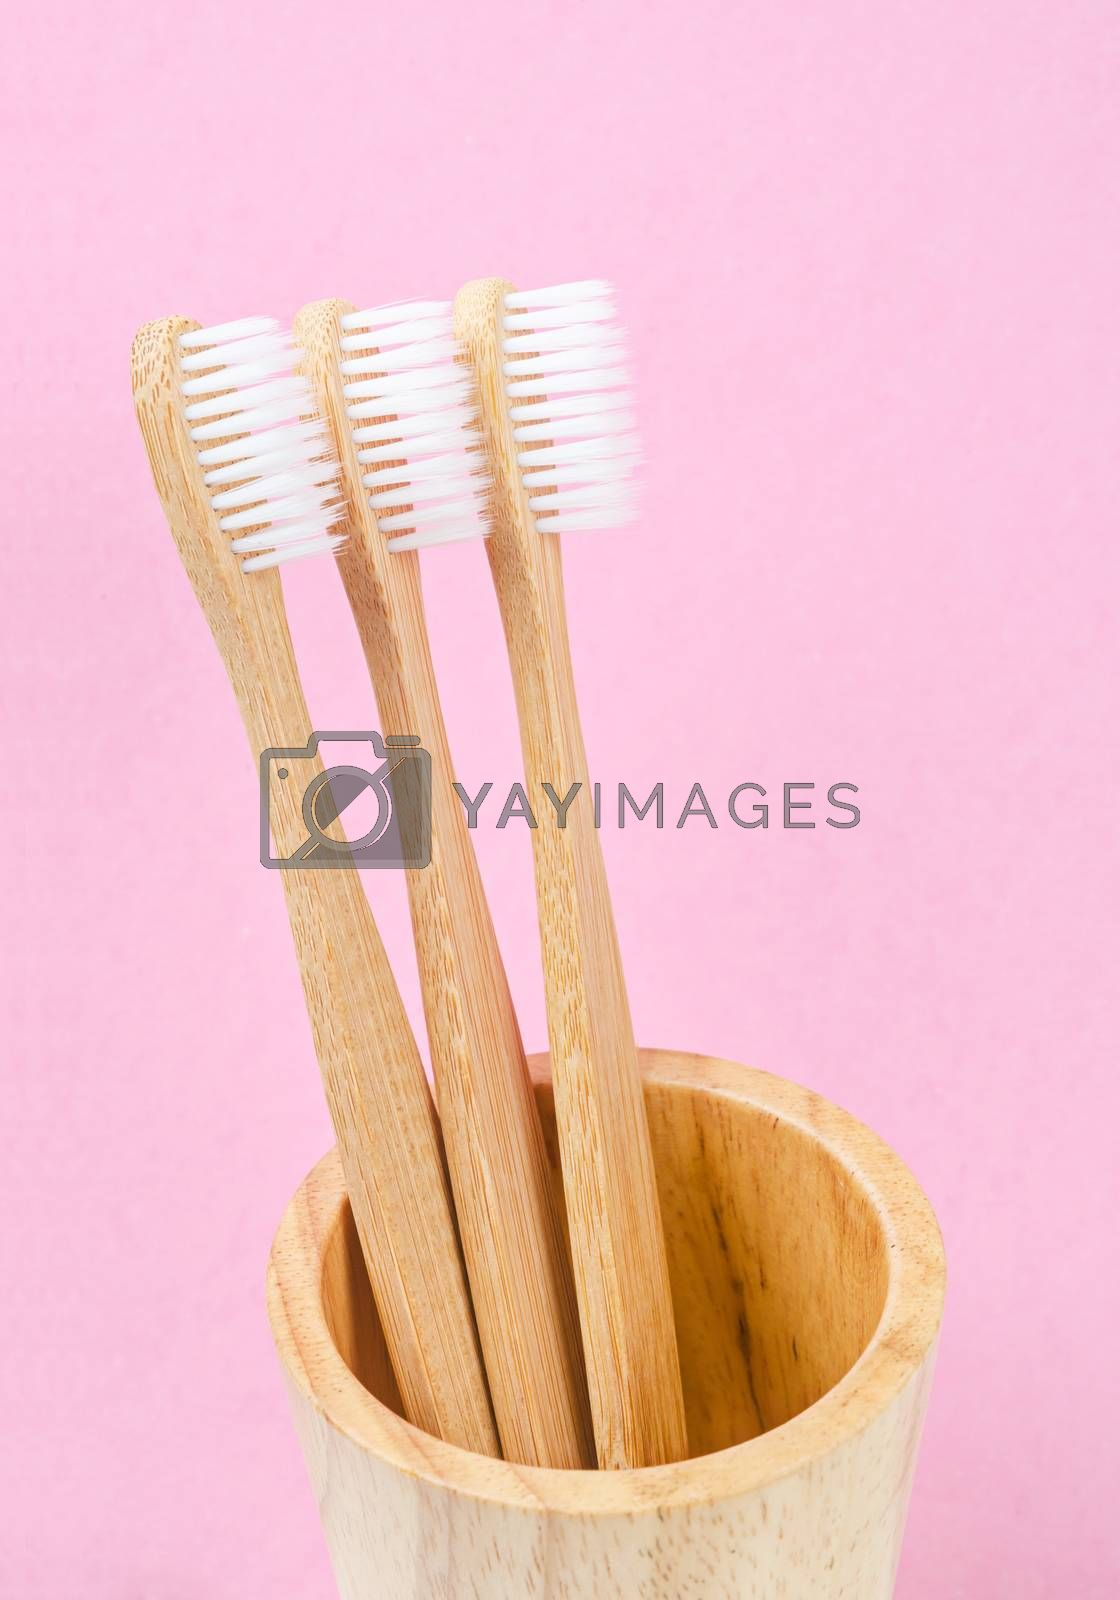 Bamboo toothbrushes on pink background. Zero waste concept.